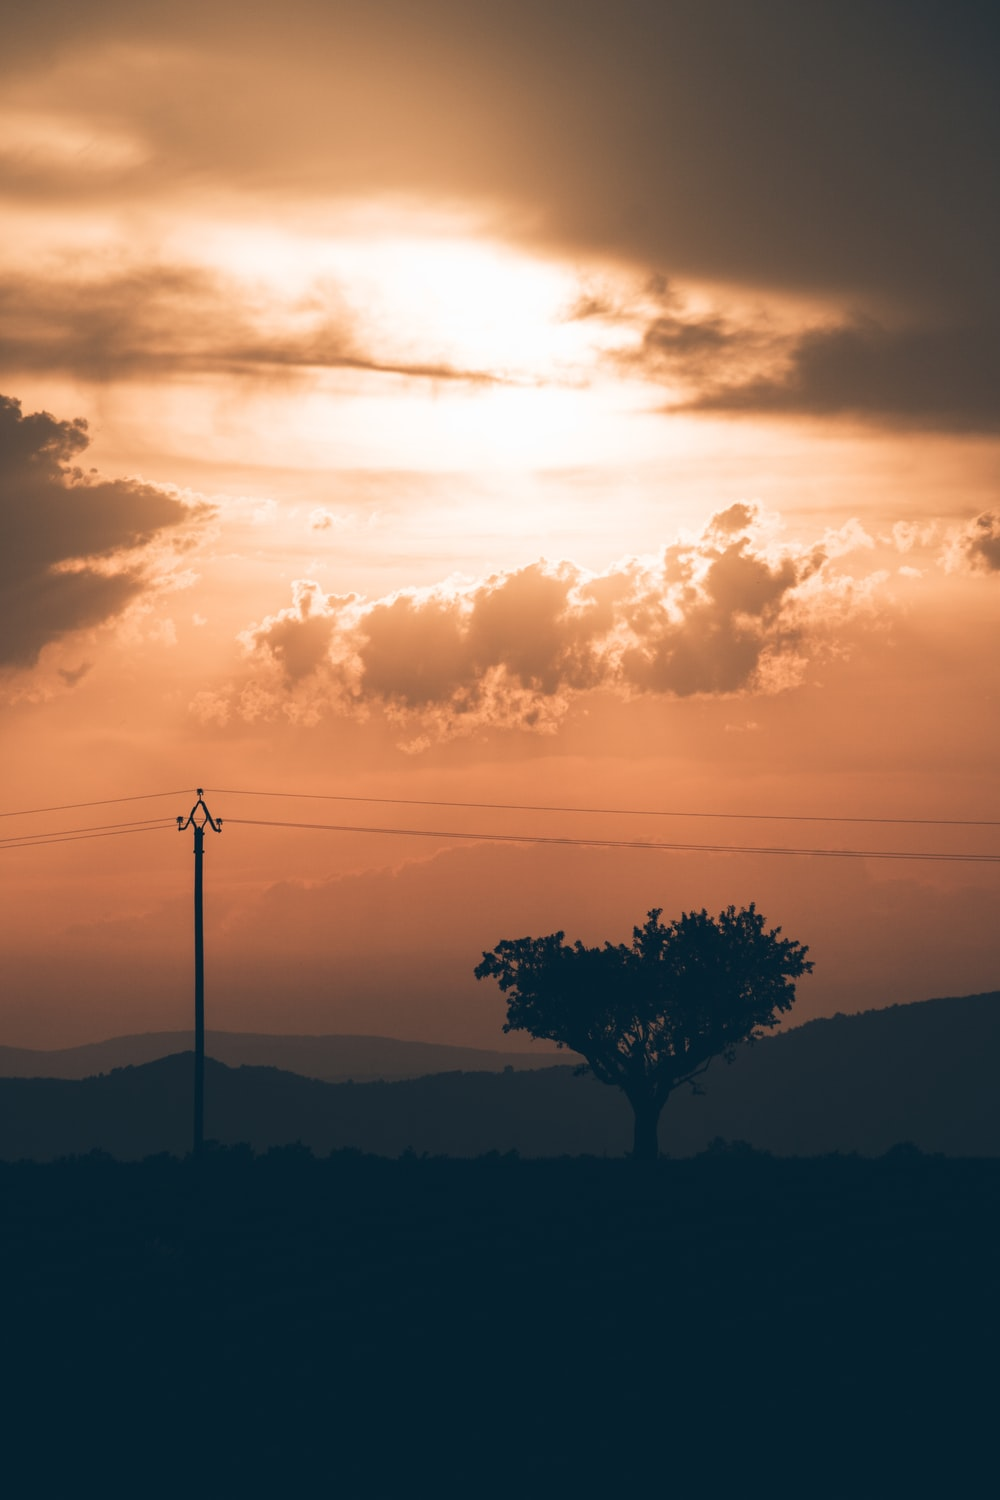 silhouette of tree beside electric post at golden hour